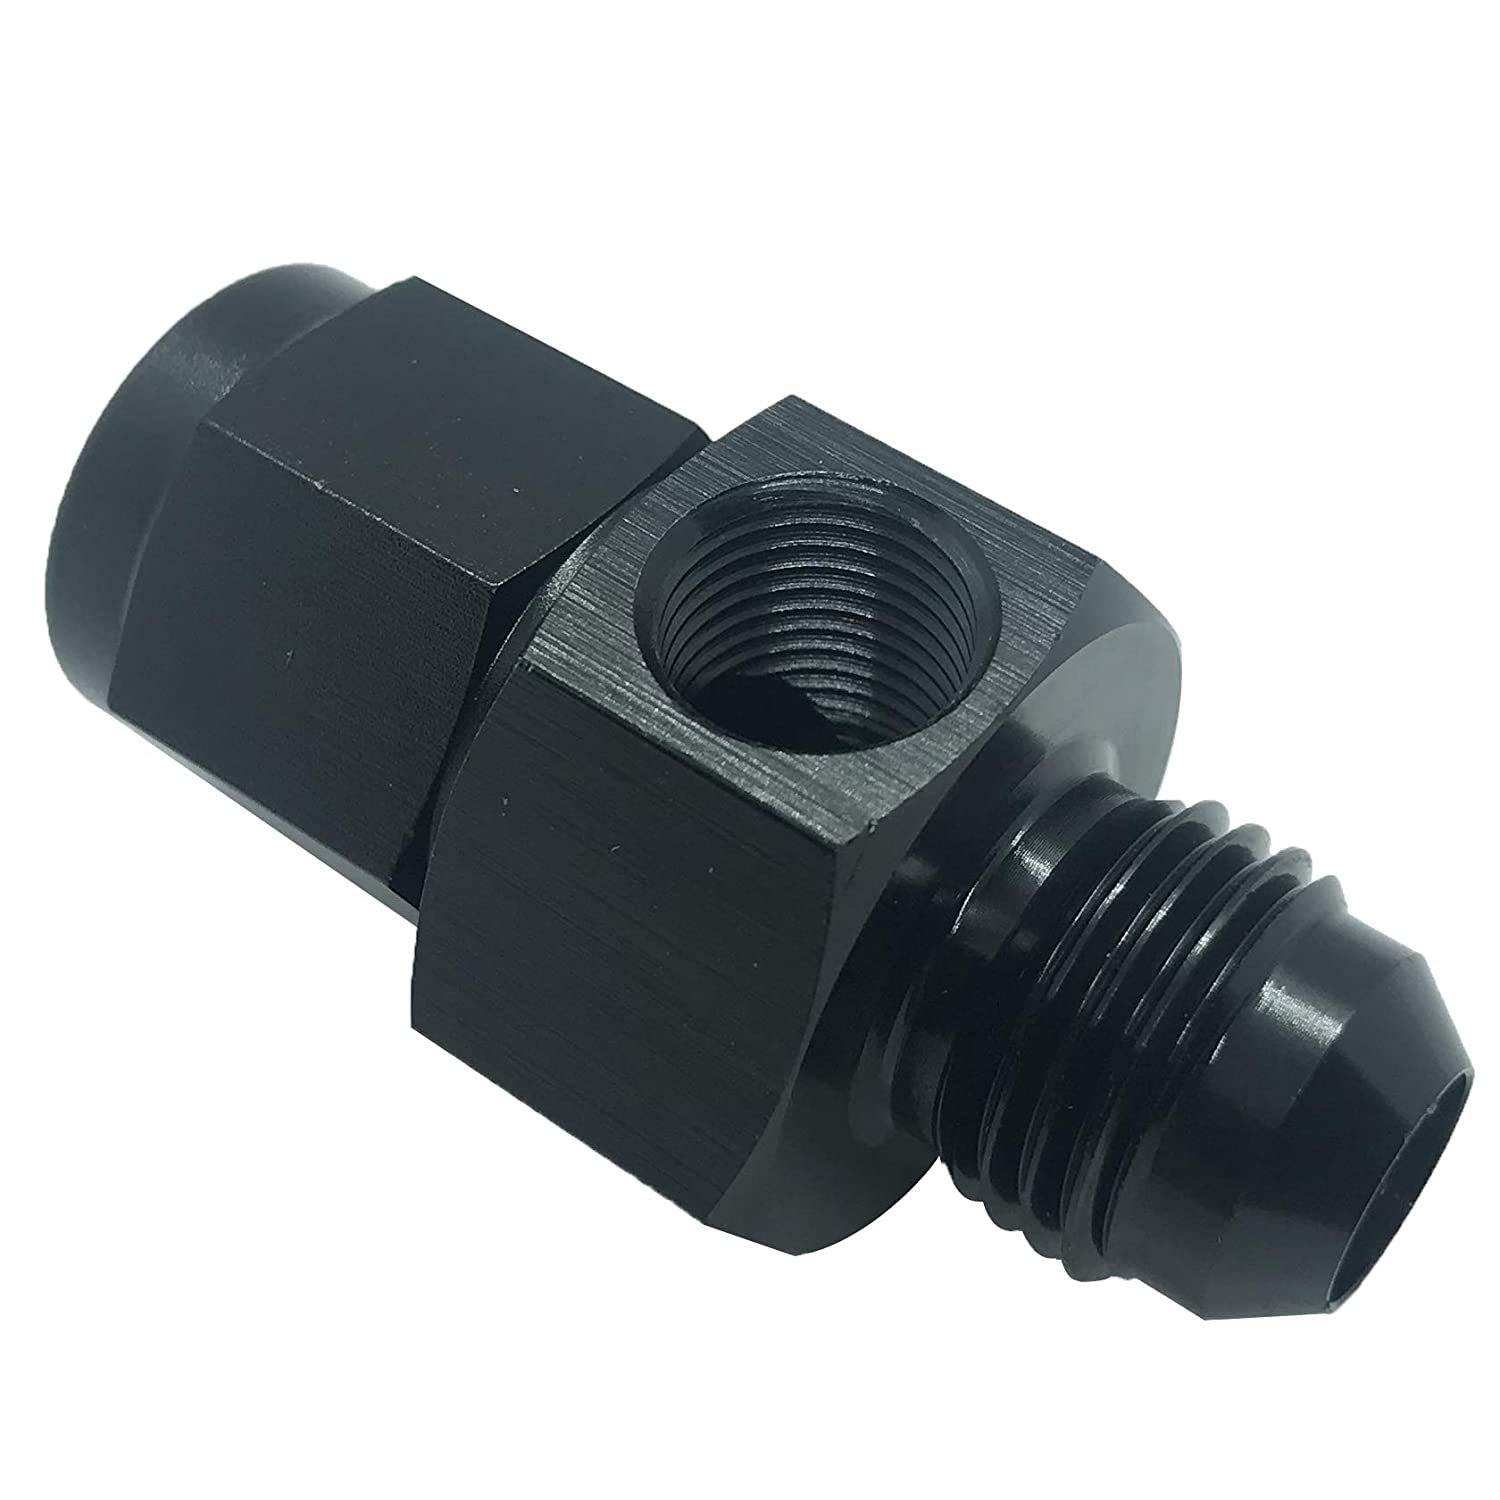 6 AN Male Flare Union Coupler Fitting Black Aluminum -6 AN Male Flare To 2